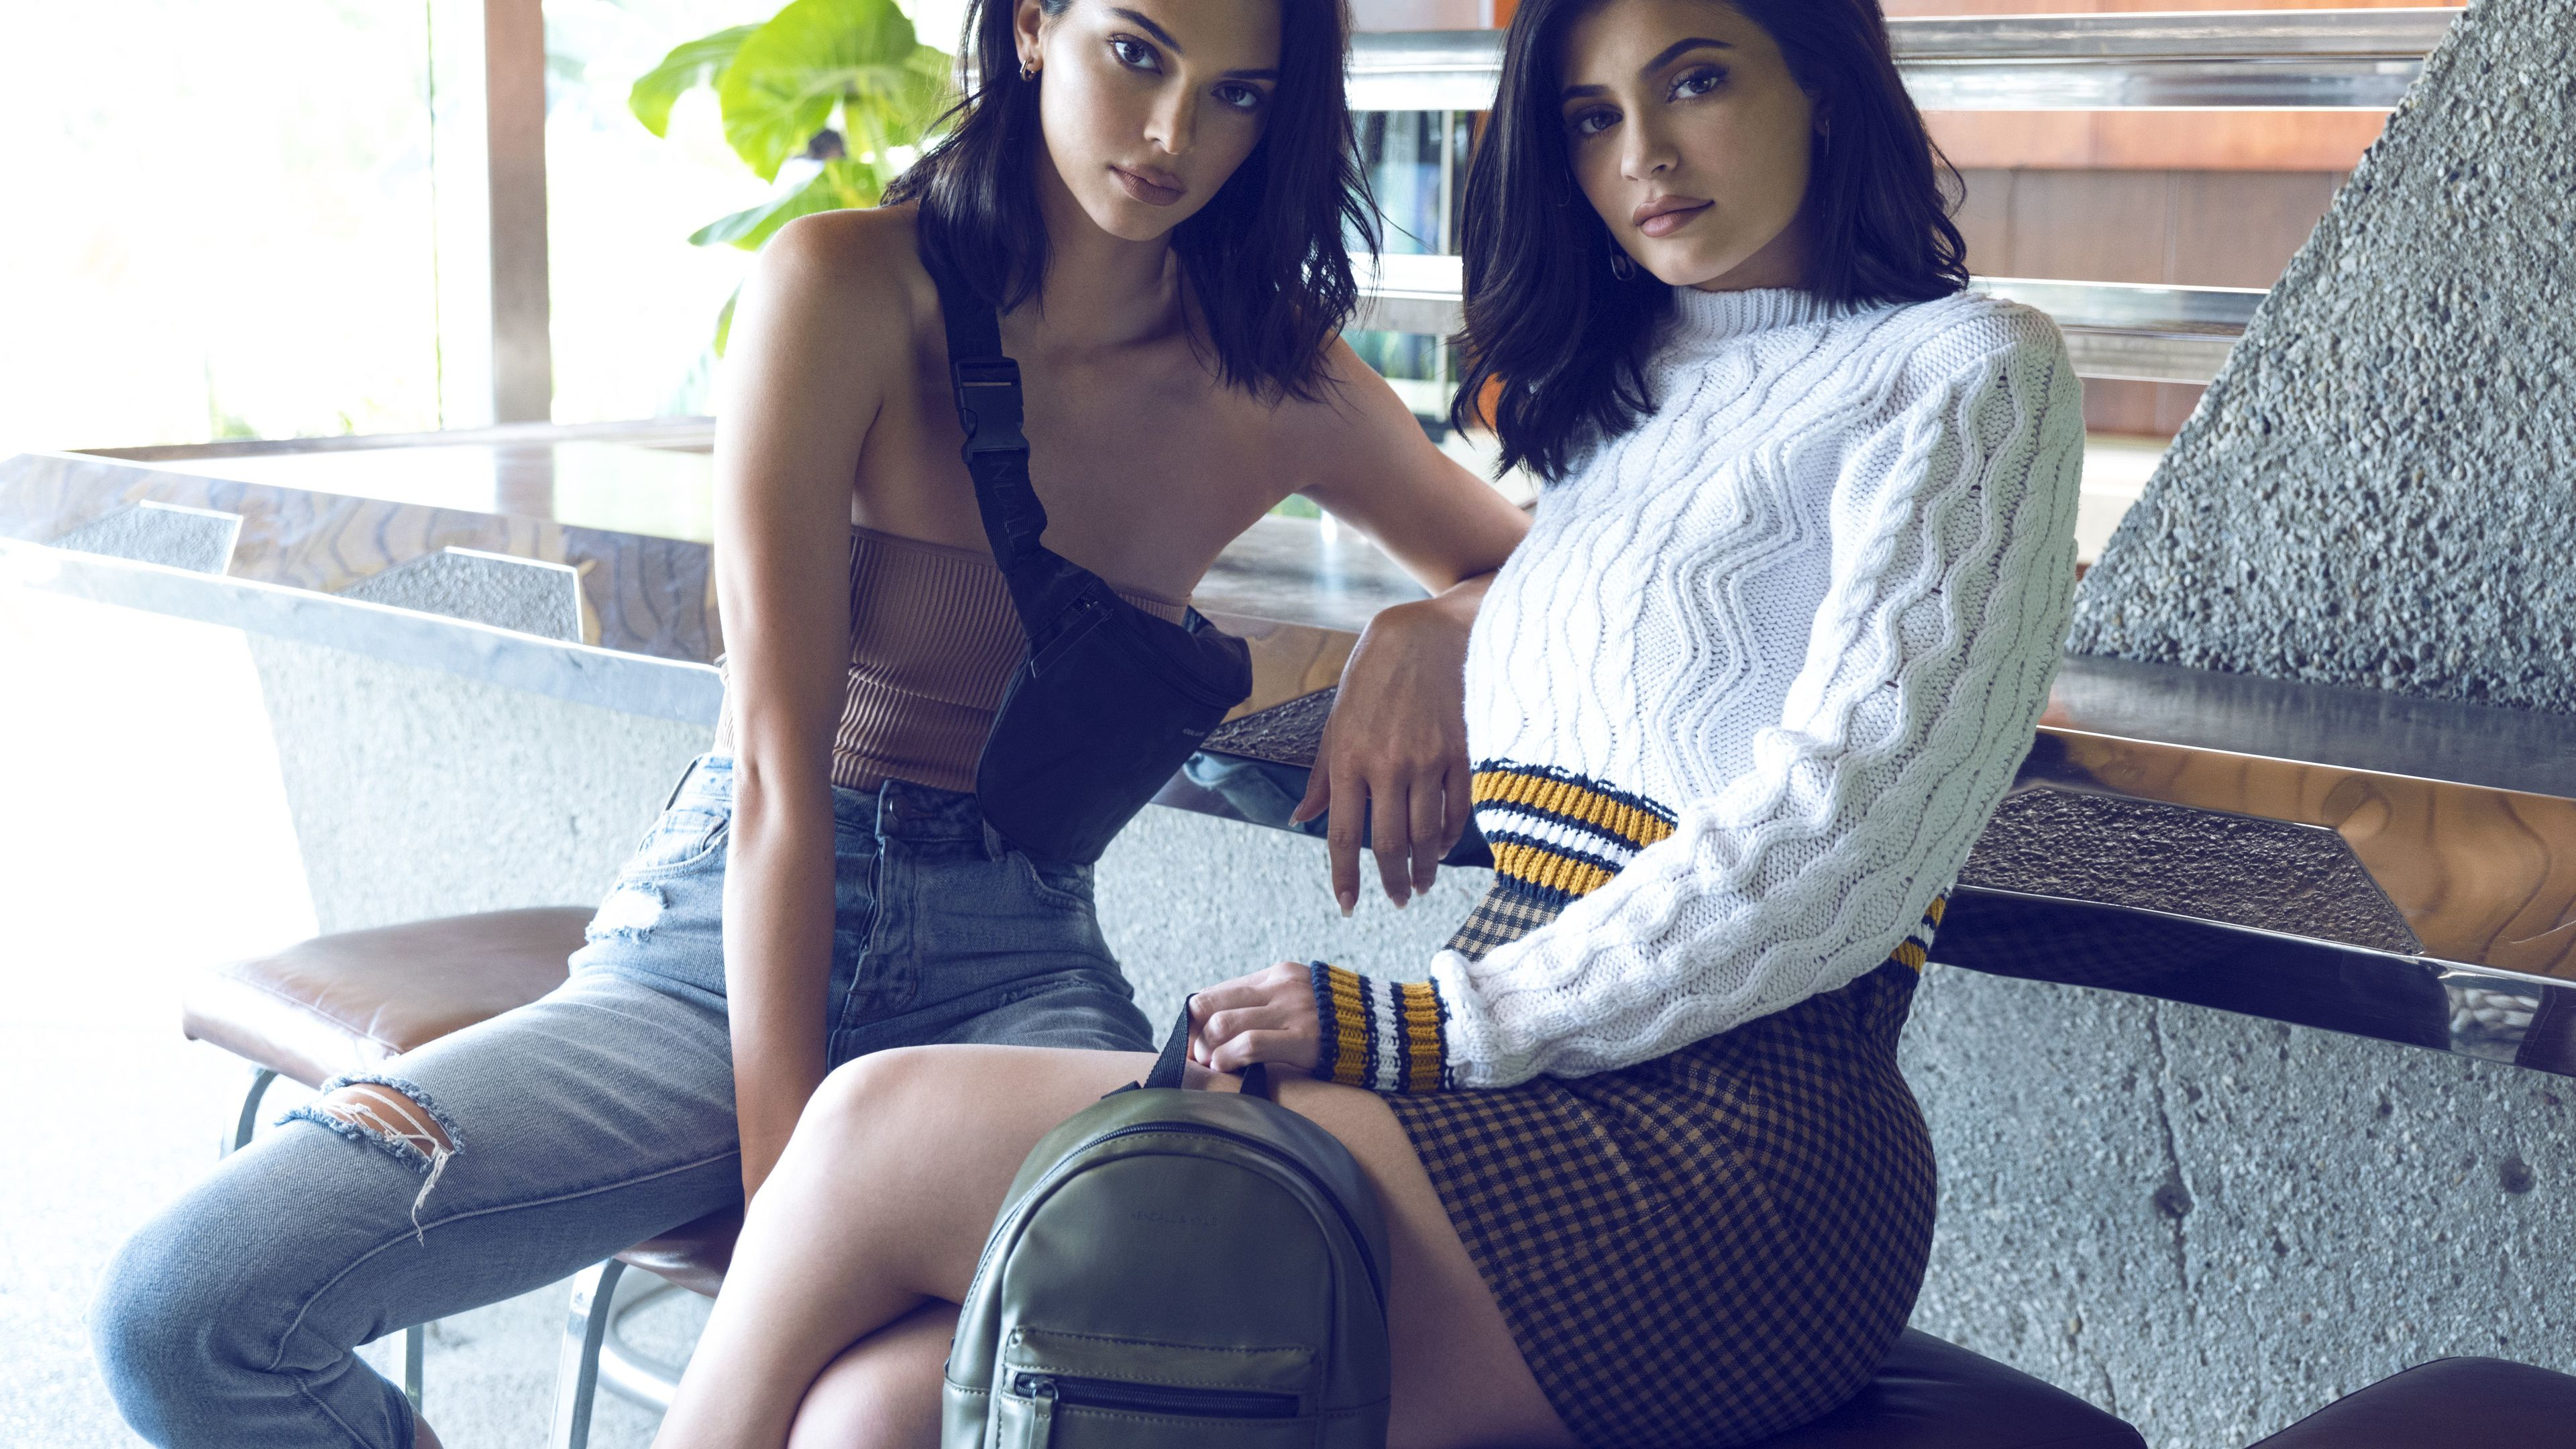 kendall and kylie fall collection 2019 4k 1546277083 - Kendall And Kylie Fall Collection 2019 4k - kylie jenner wallpapers, kendall jenner wallpapers, hd-wallpapers, girls wallpapers, celebrities wallpapers, 4k-wallpapers